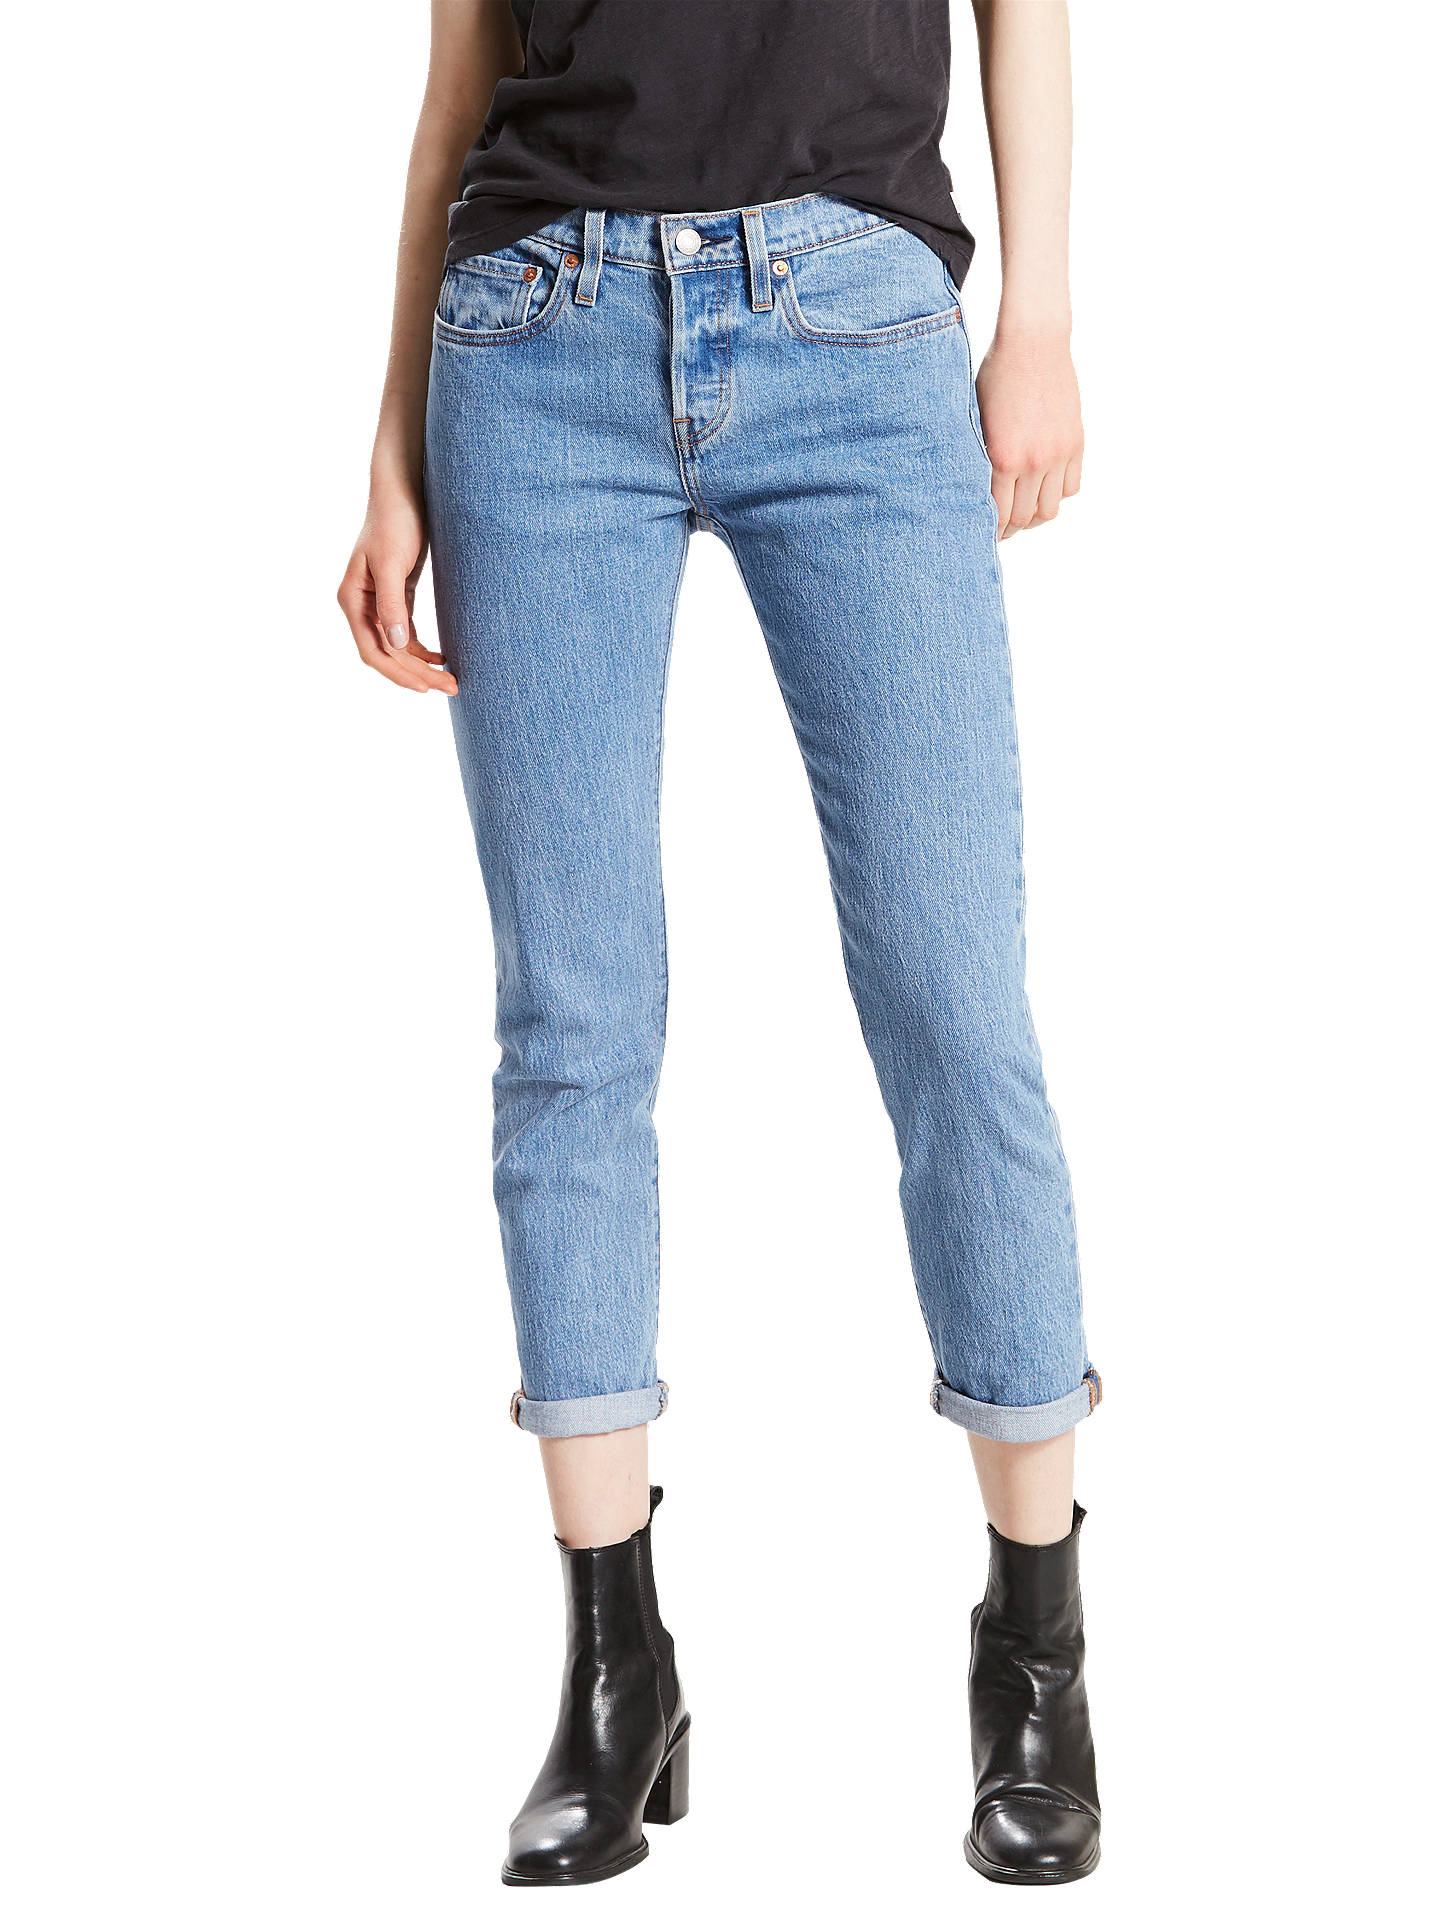 61223a03955c Buy Levi s 501 Mid Rise Tapered Jeans